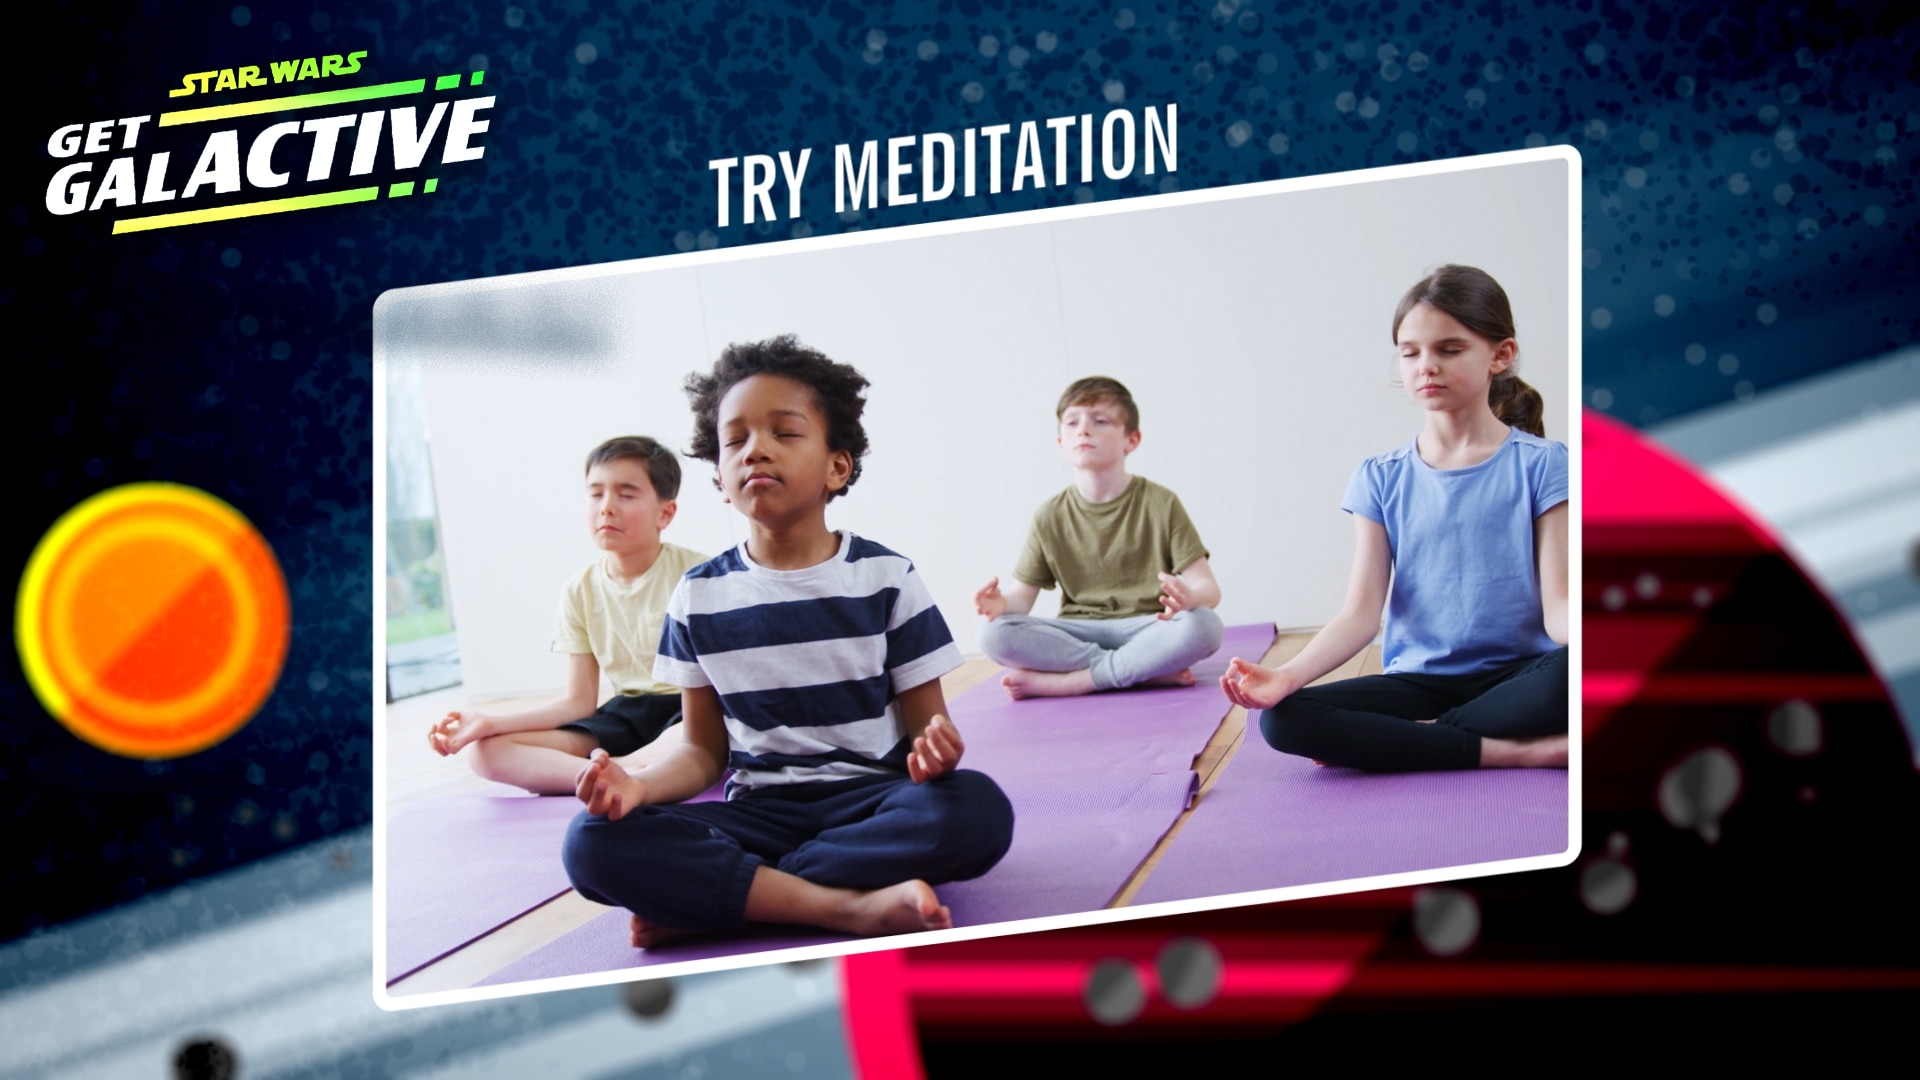 Meditation | Star Wars: Get Galactive